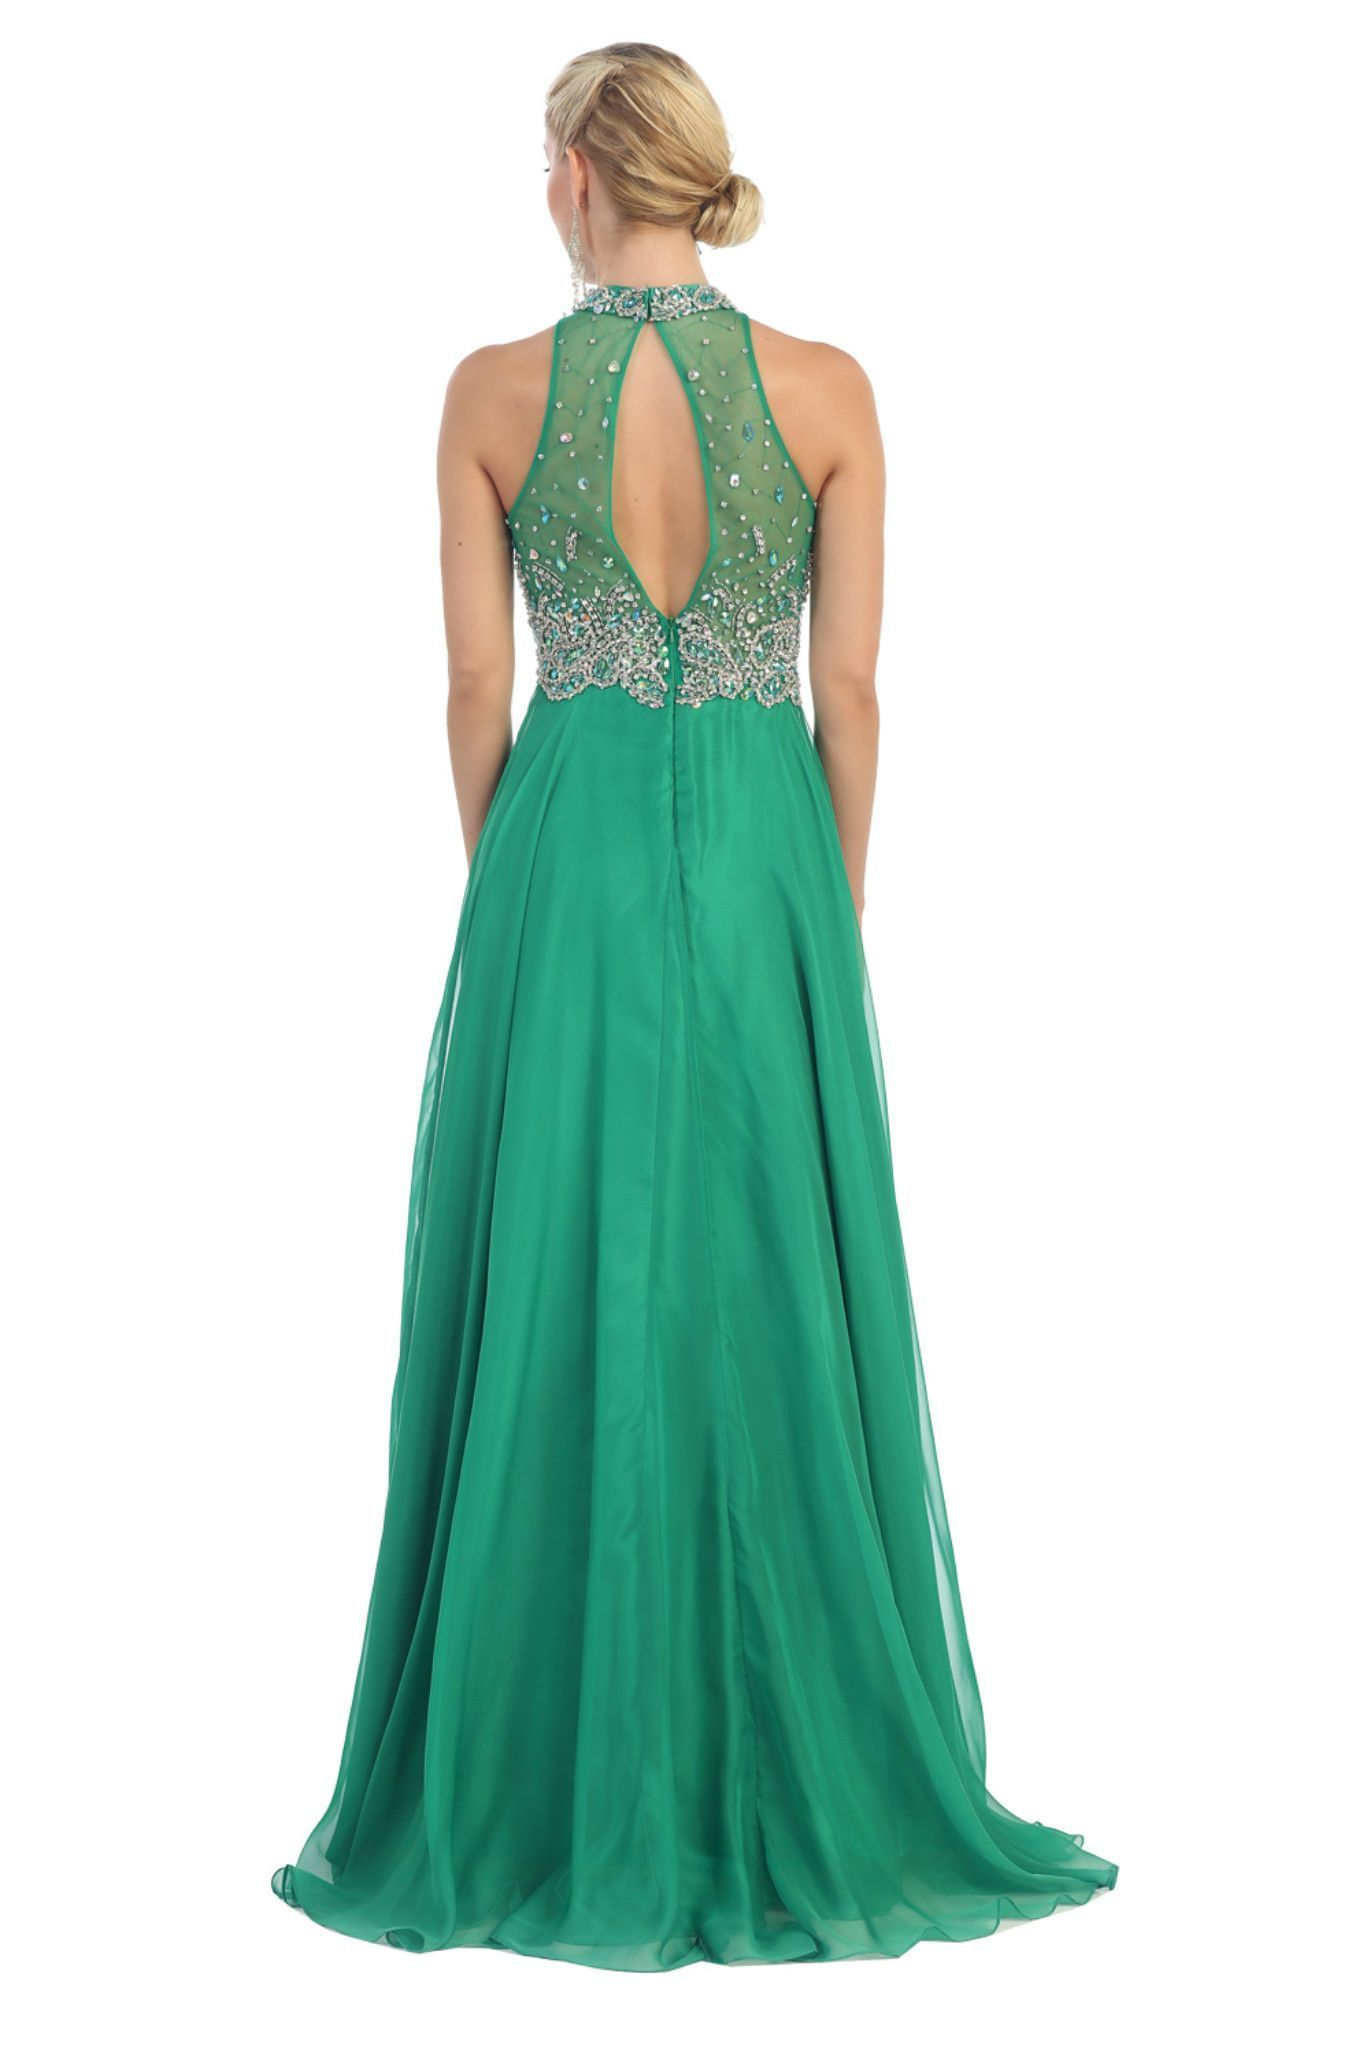 Long Prom Formal Dress Evening Gown 2018 | Formal, Prom and Sequins